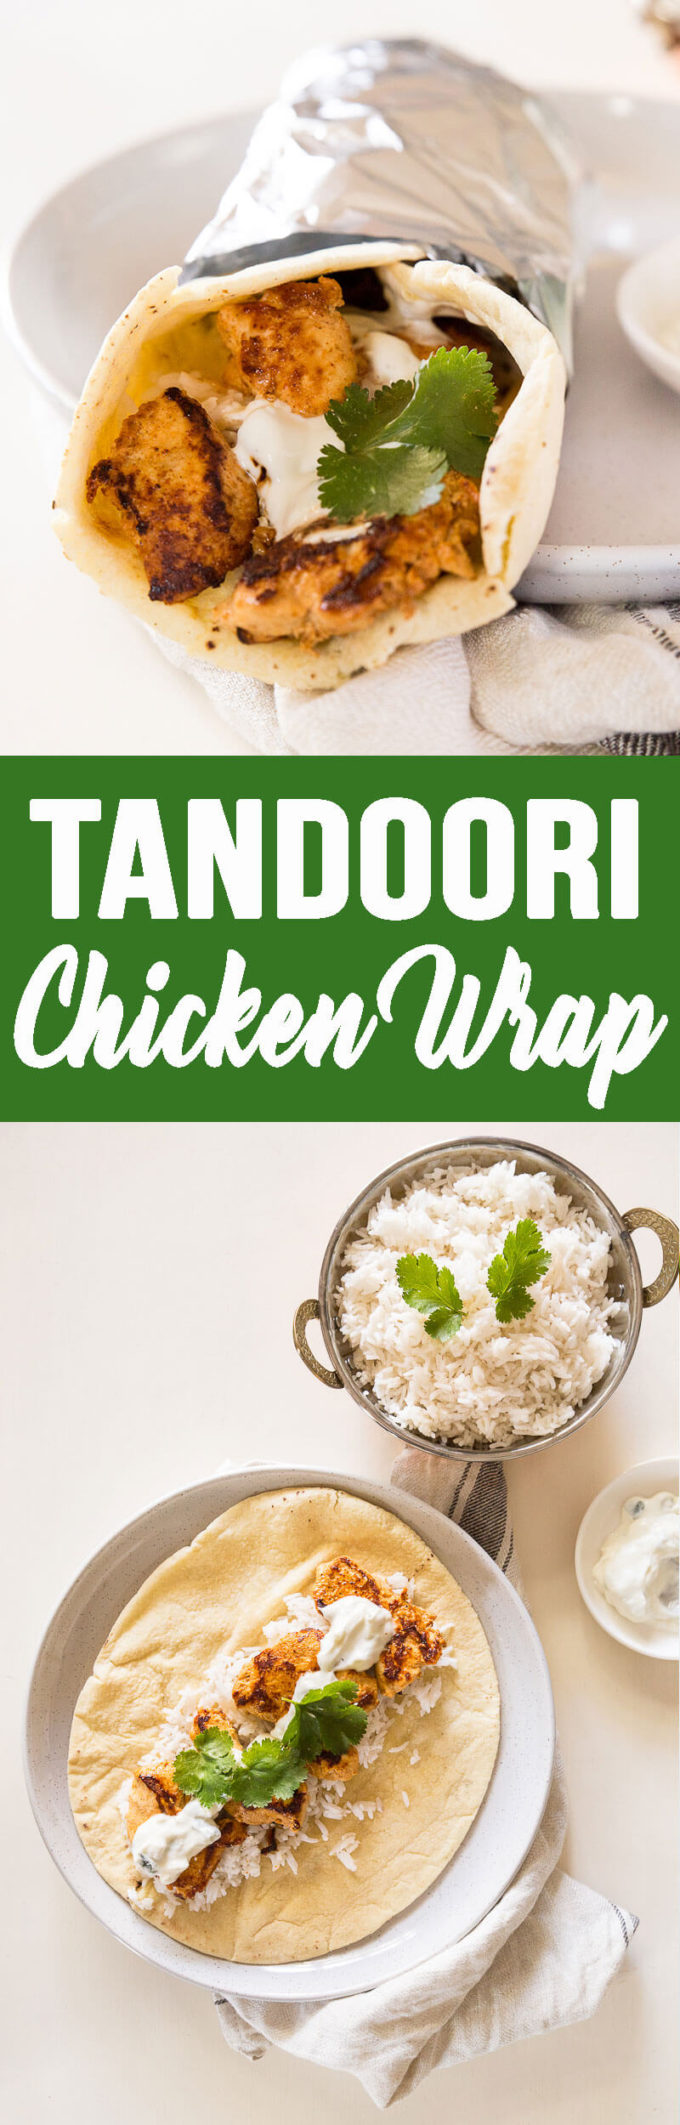 Tandoori Chicken Wraps make for an easy dinner.